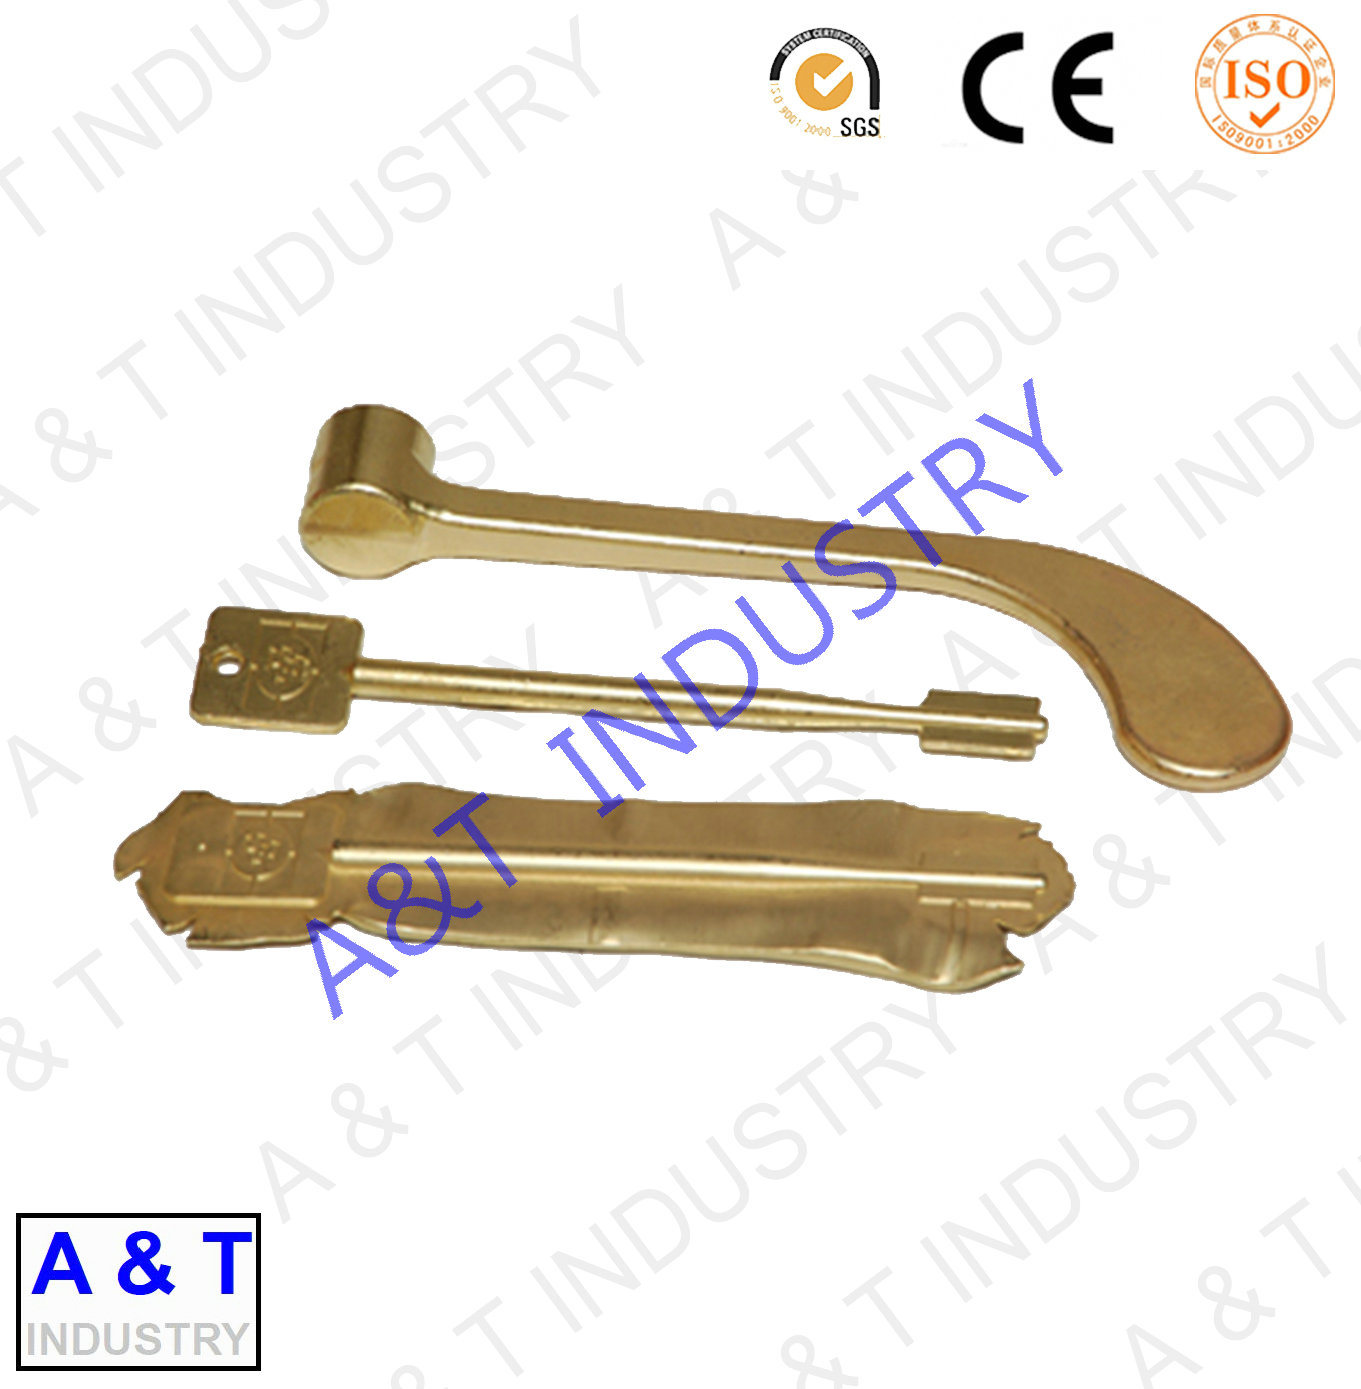 CNC OEM ODM Customized Brass/Aluminum/Stainless Steel Brass Fitting Parts